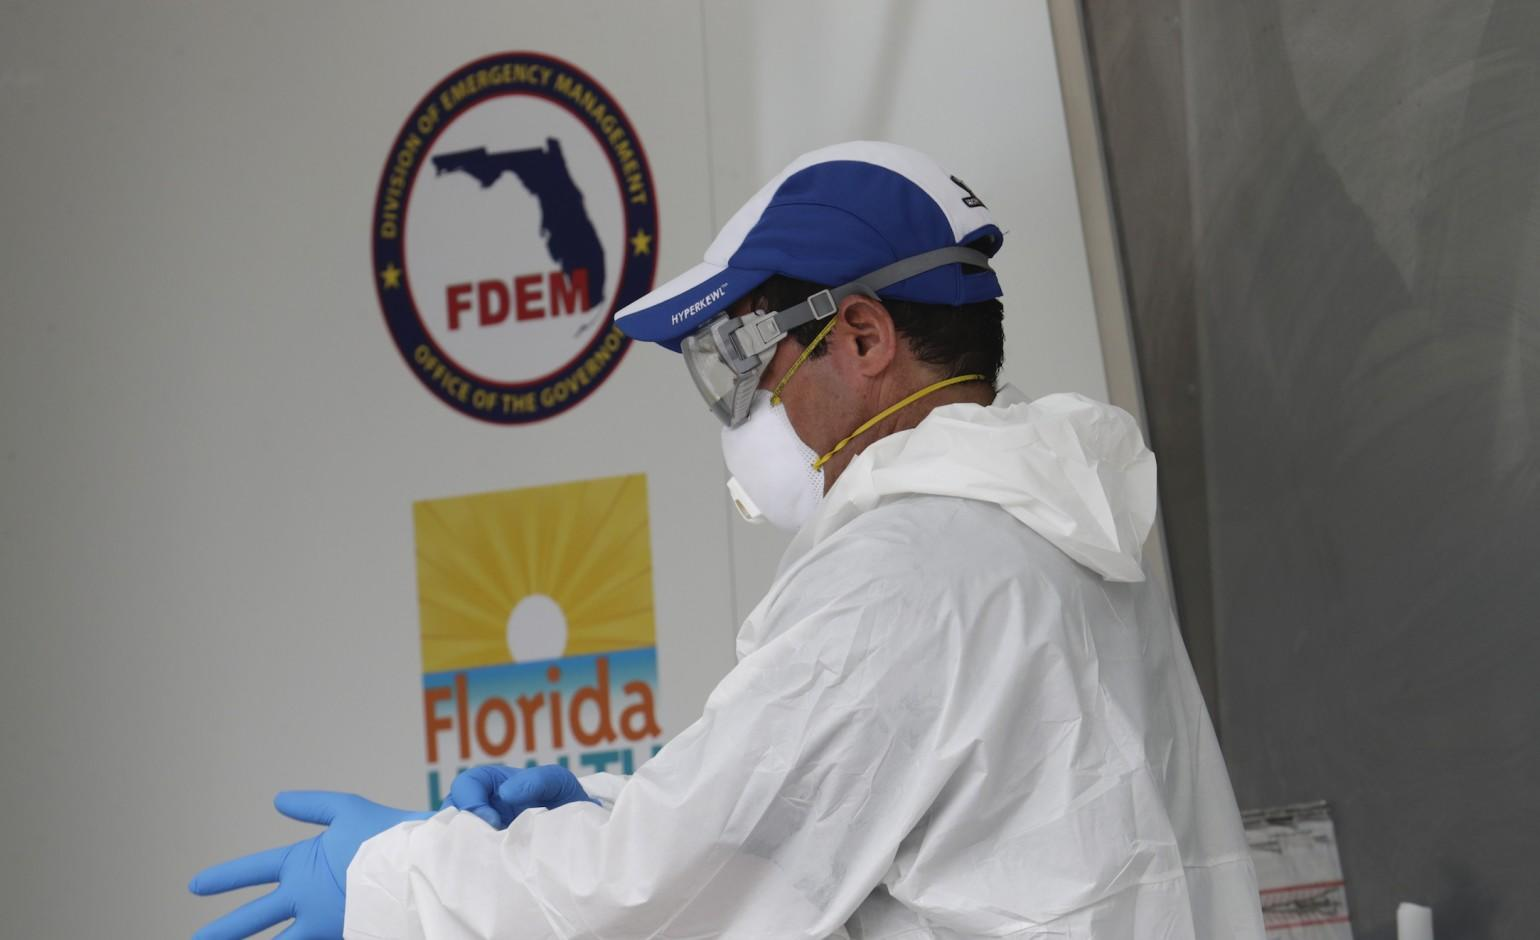 CDC scrambles to correct Florida COVID-19 cases but can't seem to match state data